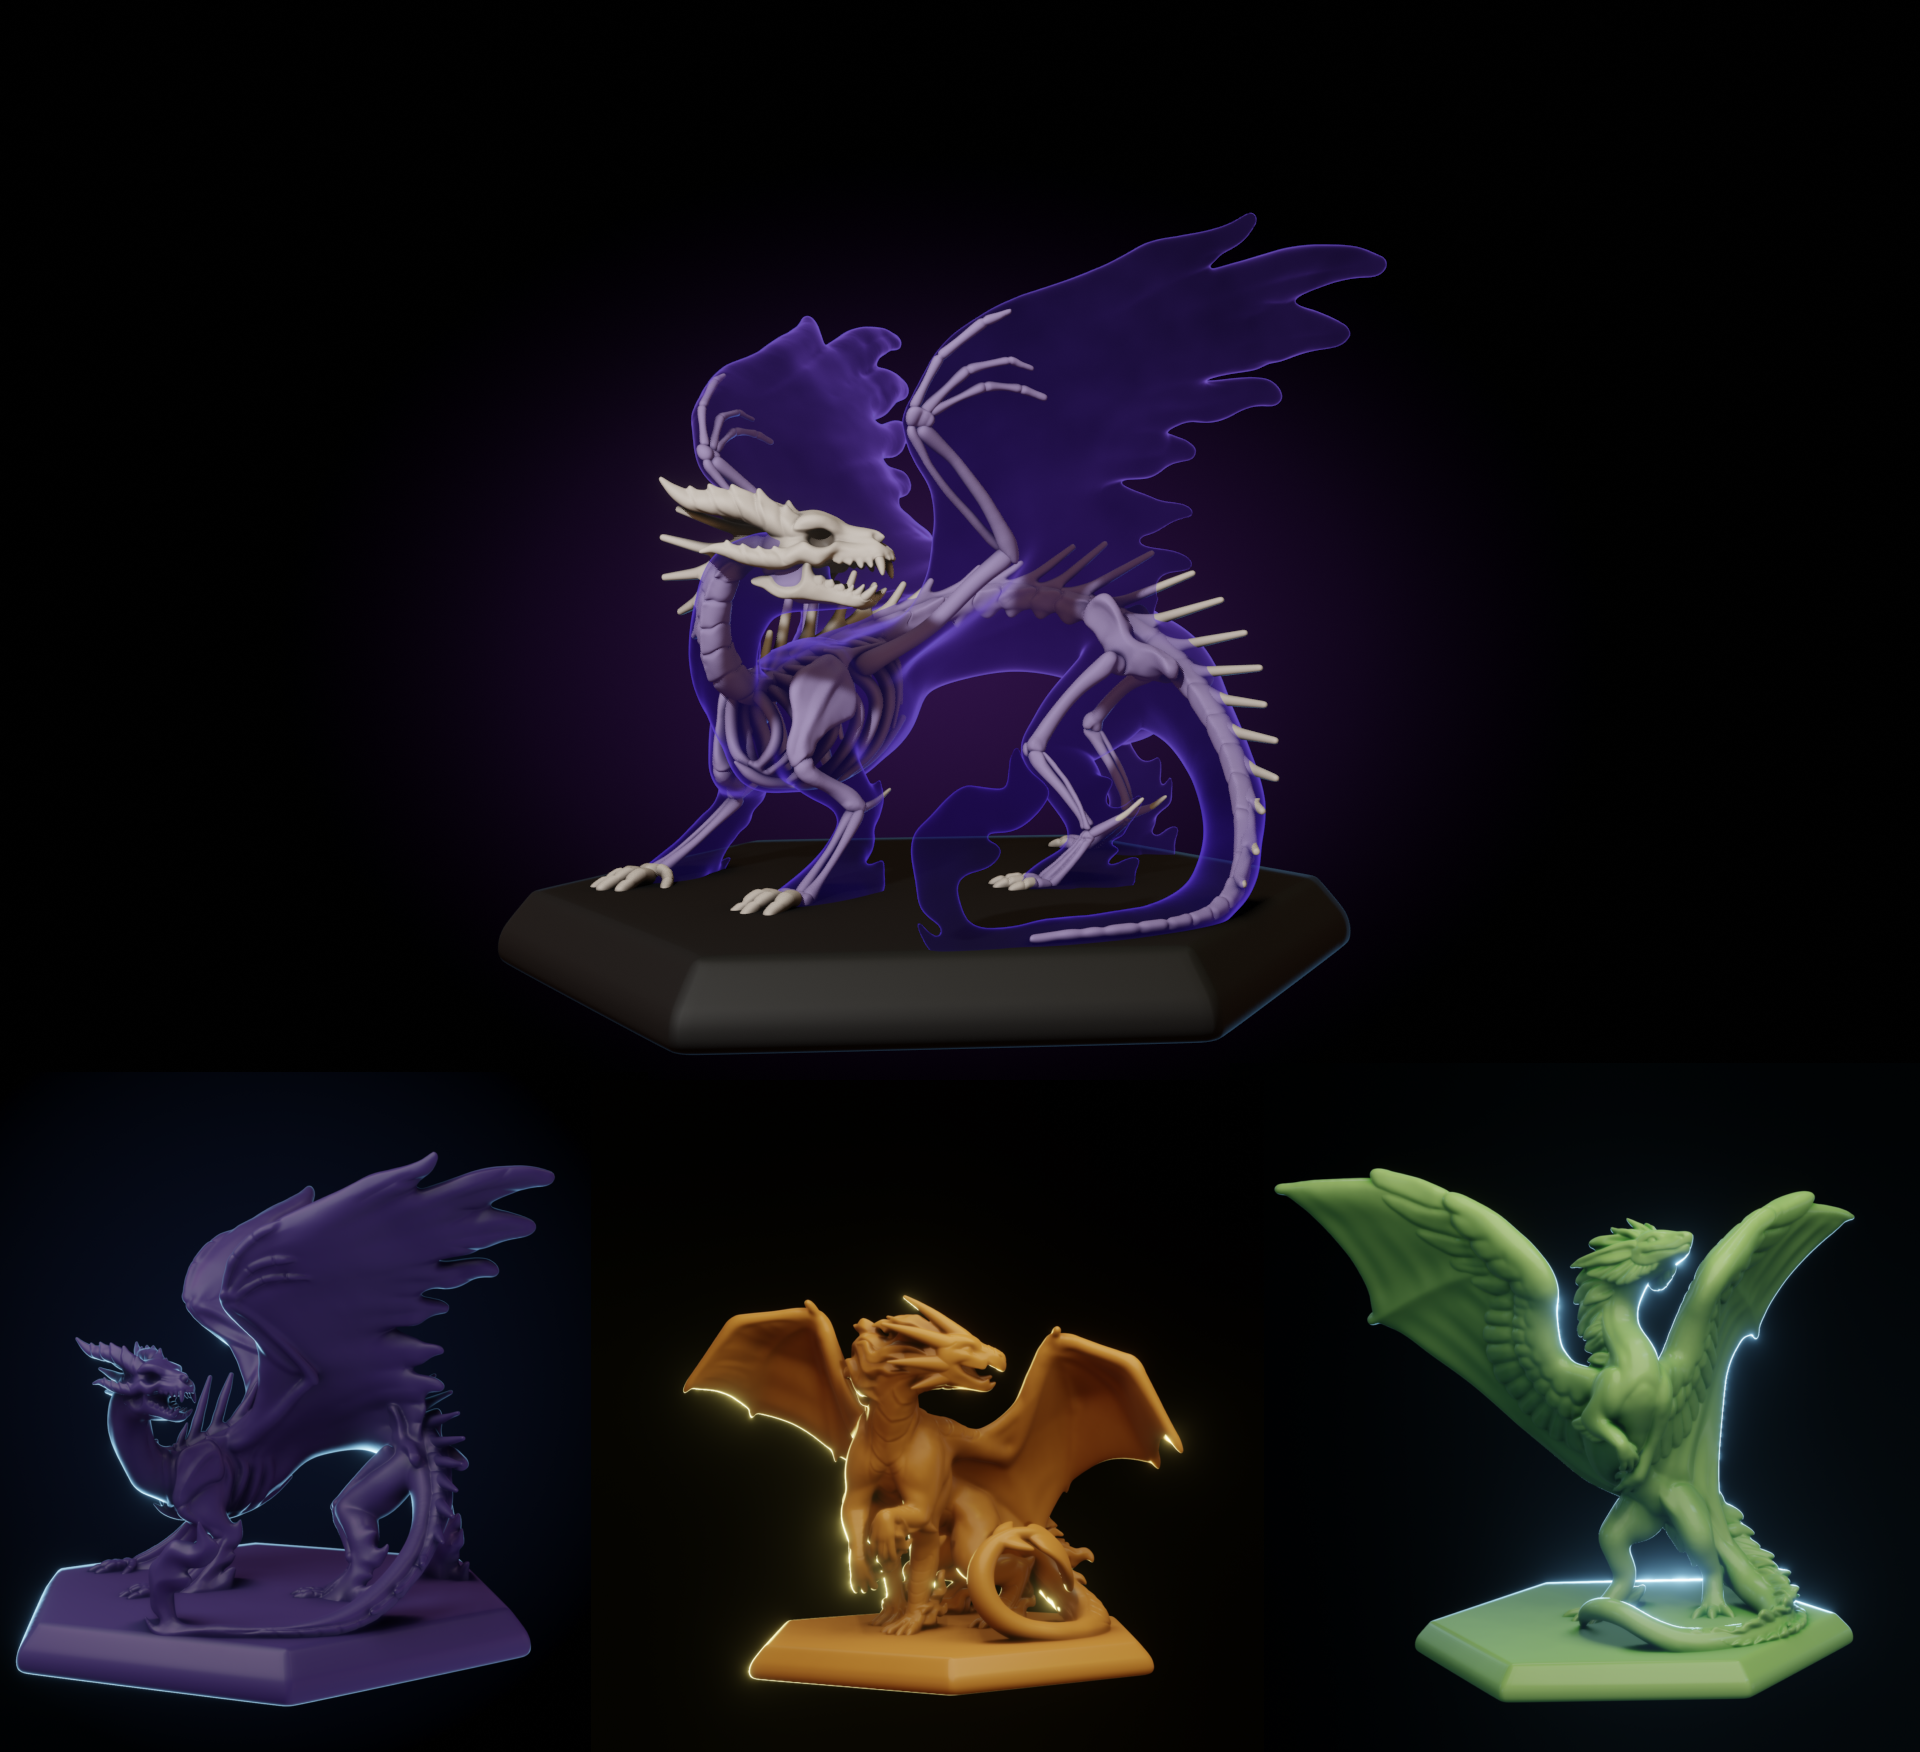 Dracul and the figurines